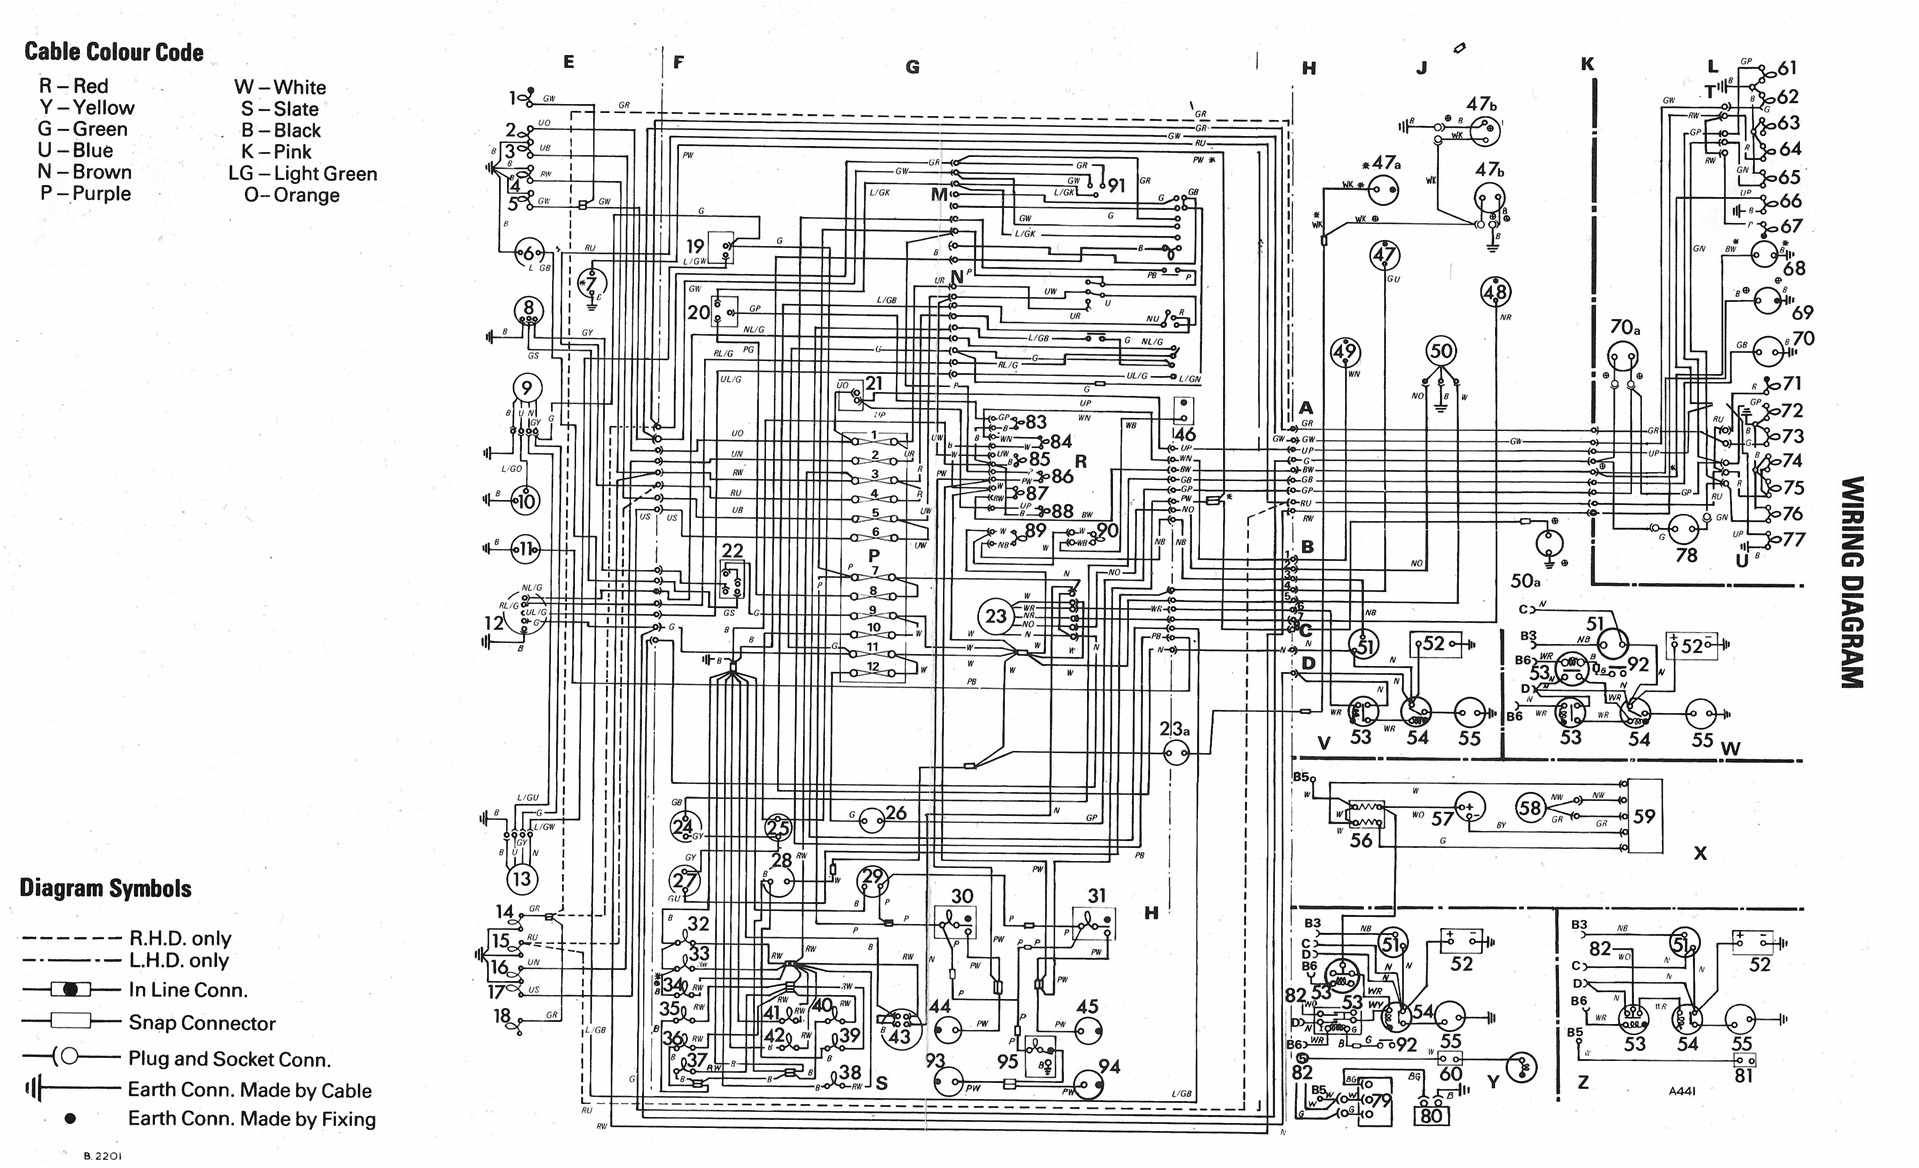 482800022528094020 on 1983 f250 fuel pump wiring diagram